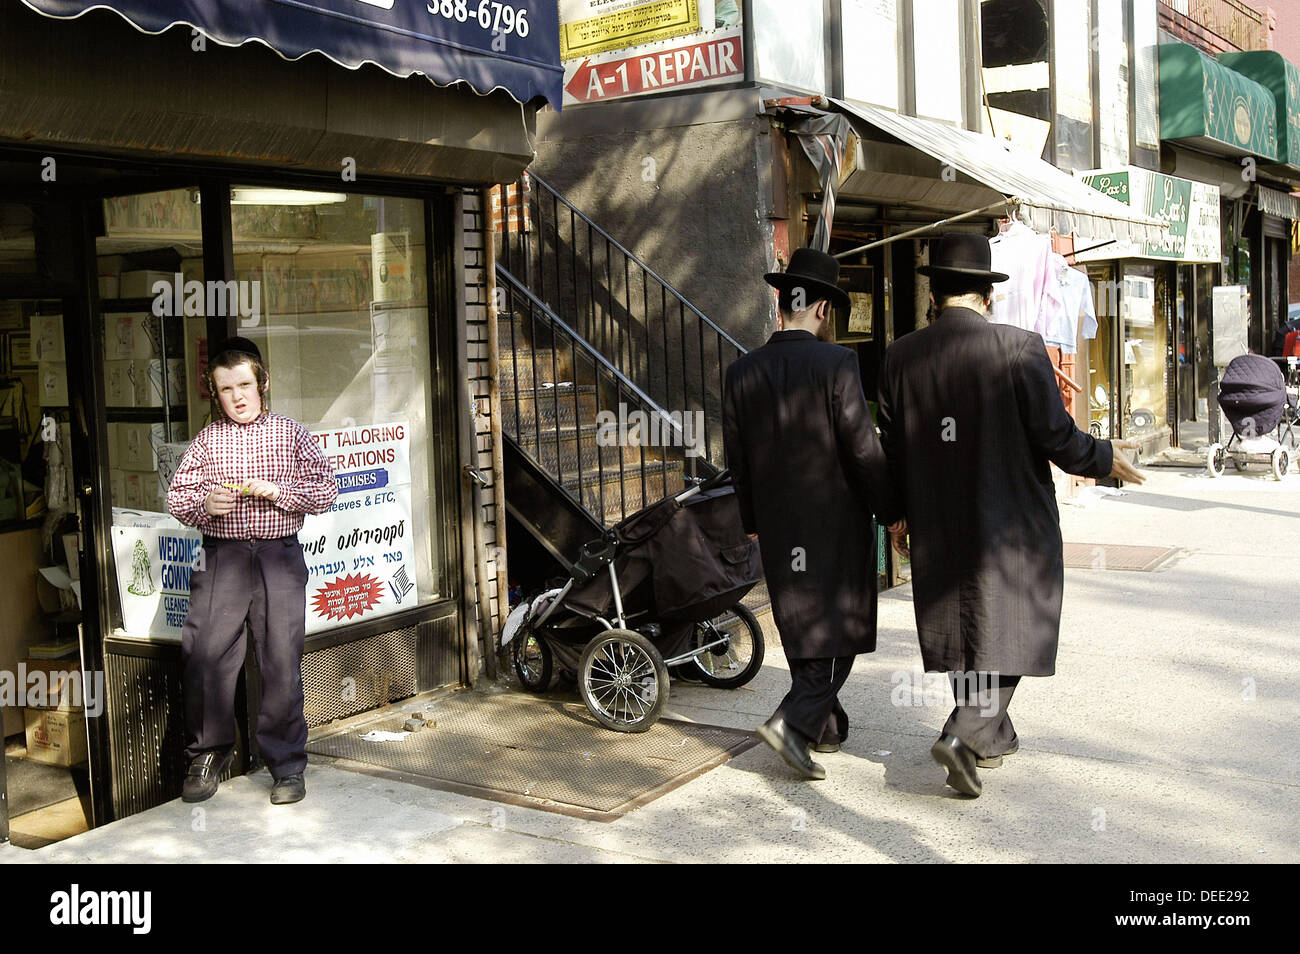 toano jewish single men Dating attractive people  dating and relationships why do ultra-orthodox jewish men avoid looking at women  ultra-orthodox jewish men believe that women are.